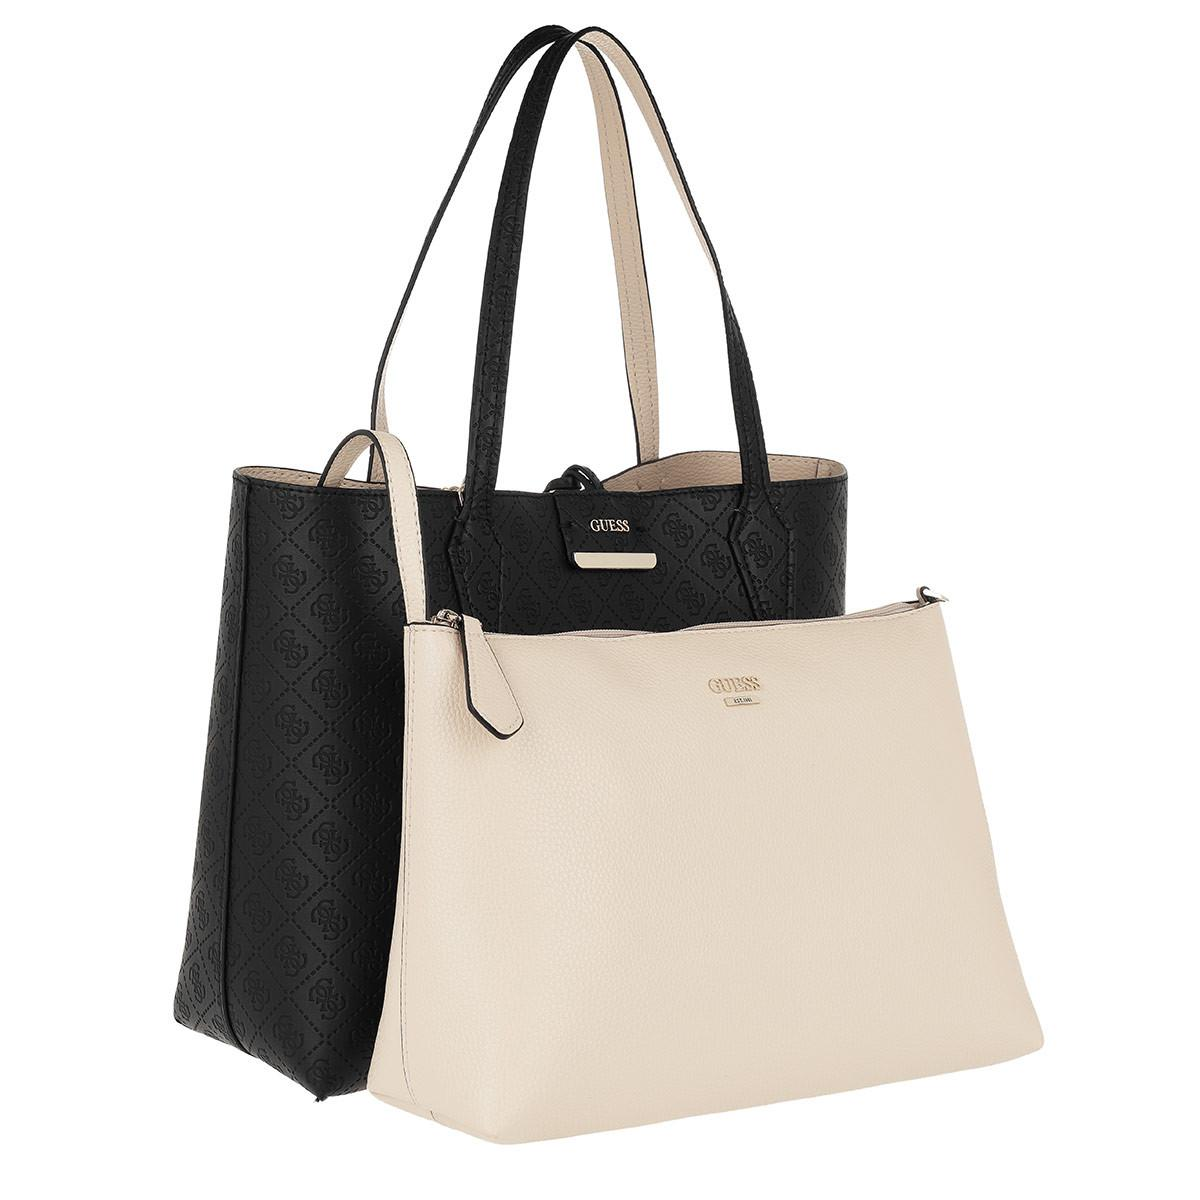 Guess Bobbi Inside Out Tote Black/nude